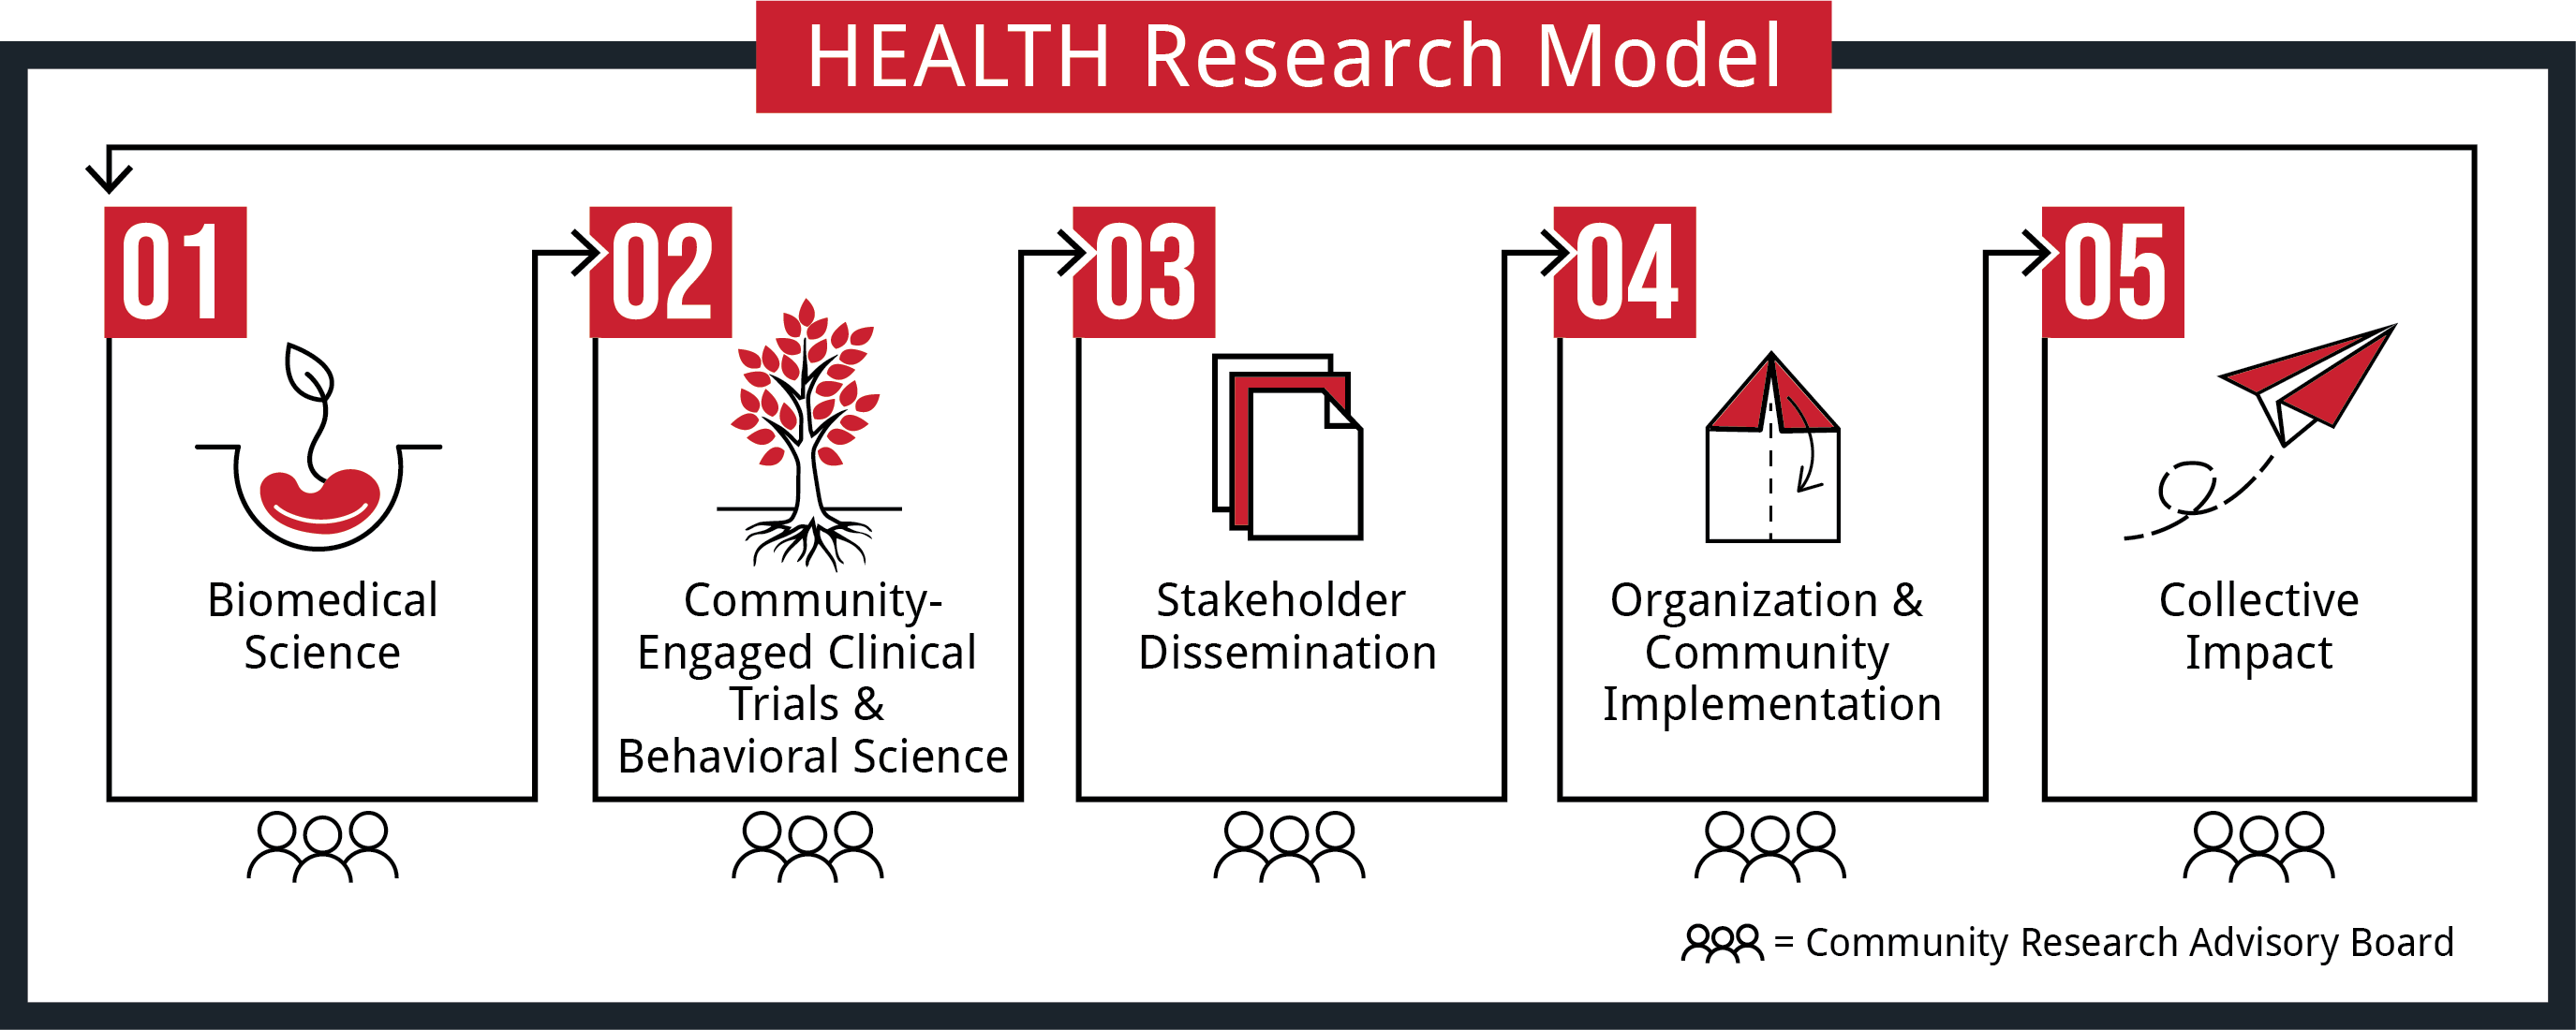 The 5 Step HEALTH Research Model illustration. Step 1: Biomedical Science. Step 2: Community-Engaged Clinical Trials and Behavioral Science. Step 3: Stakeholder Dissemination. Step 4: Organization and Community Impact. Step 5: Collective Impact.